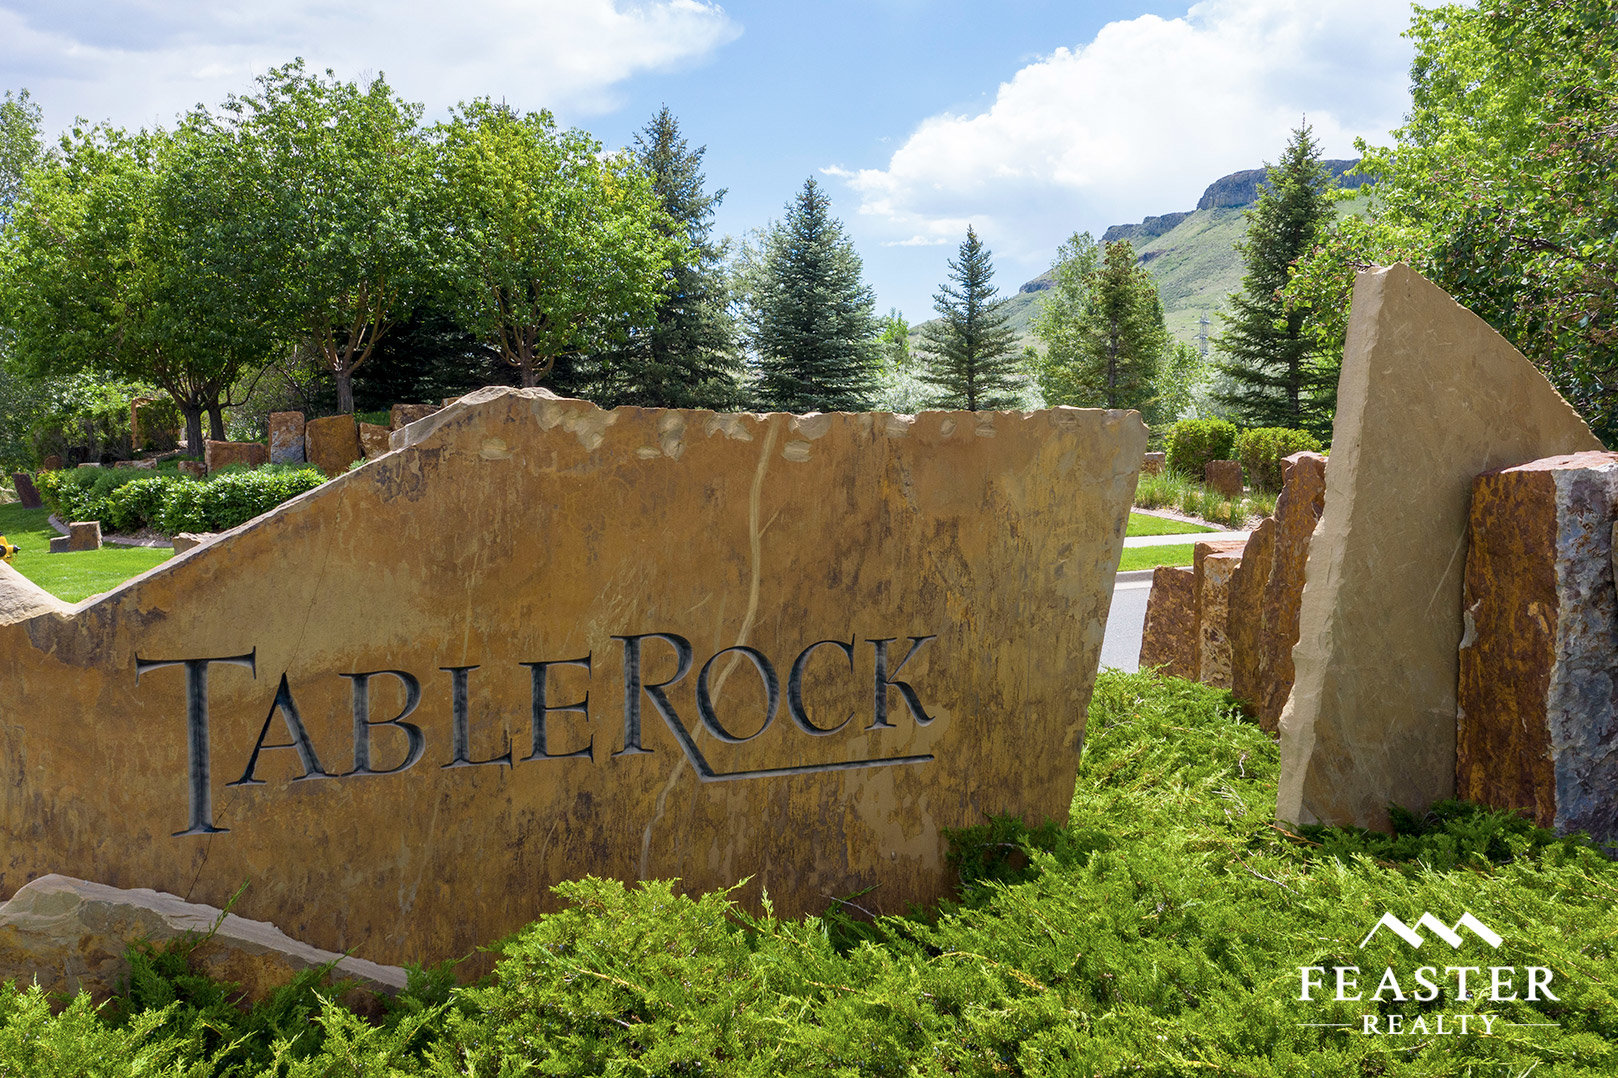 Entrance to Tablerock Golden neighborhood